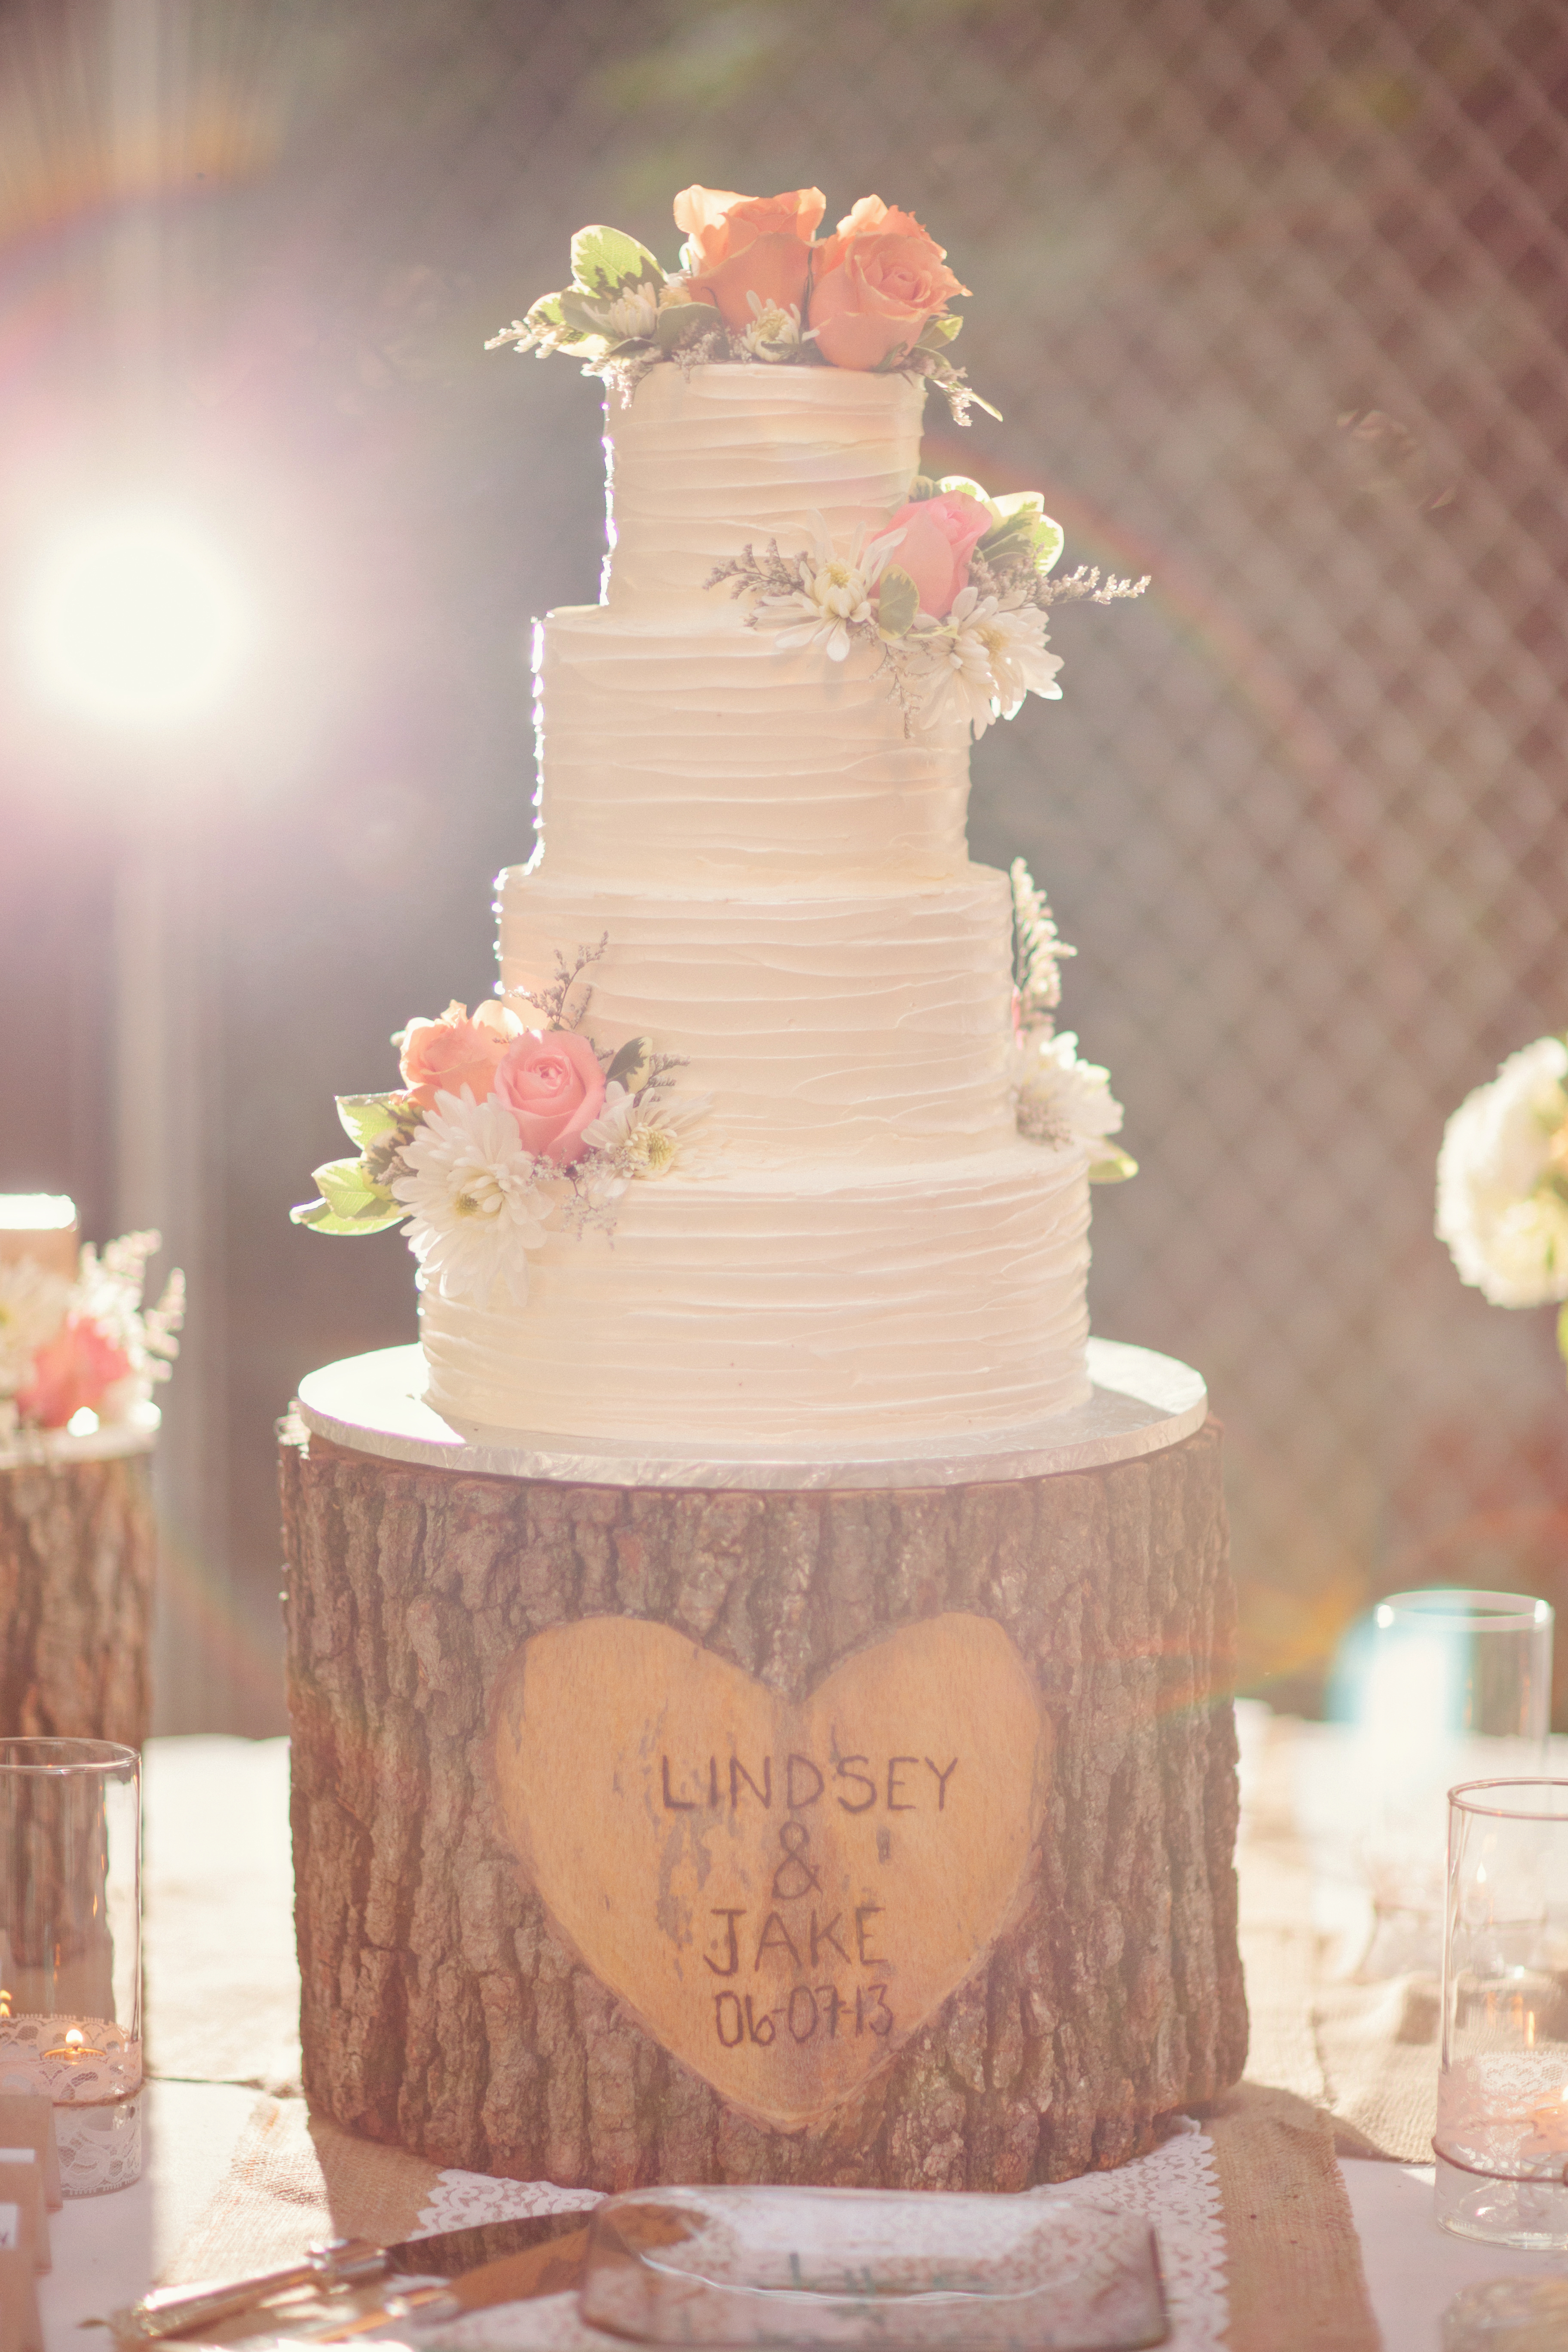 Rustic cake stands Rustic cake and Cake stands on Pinterest